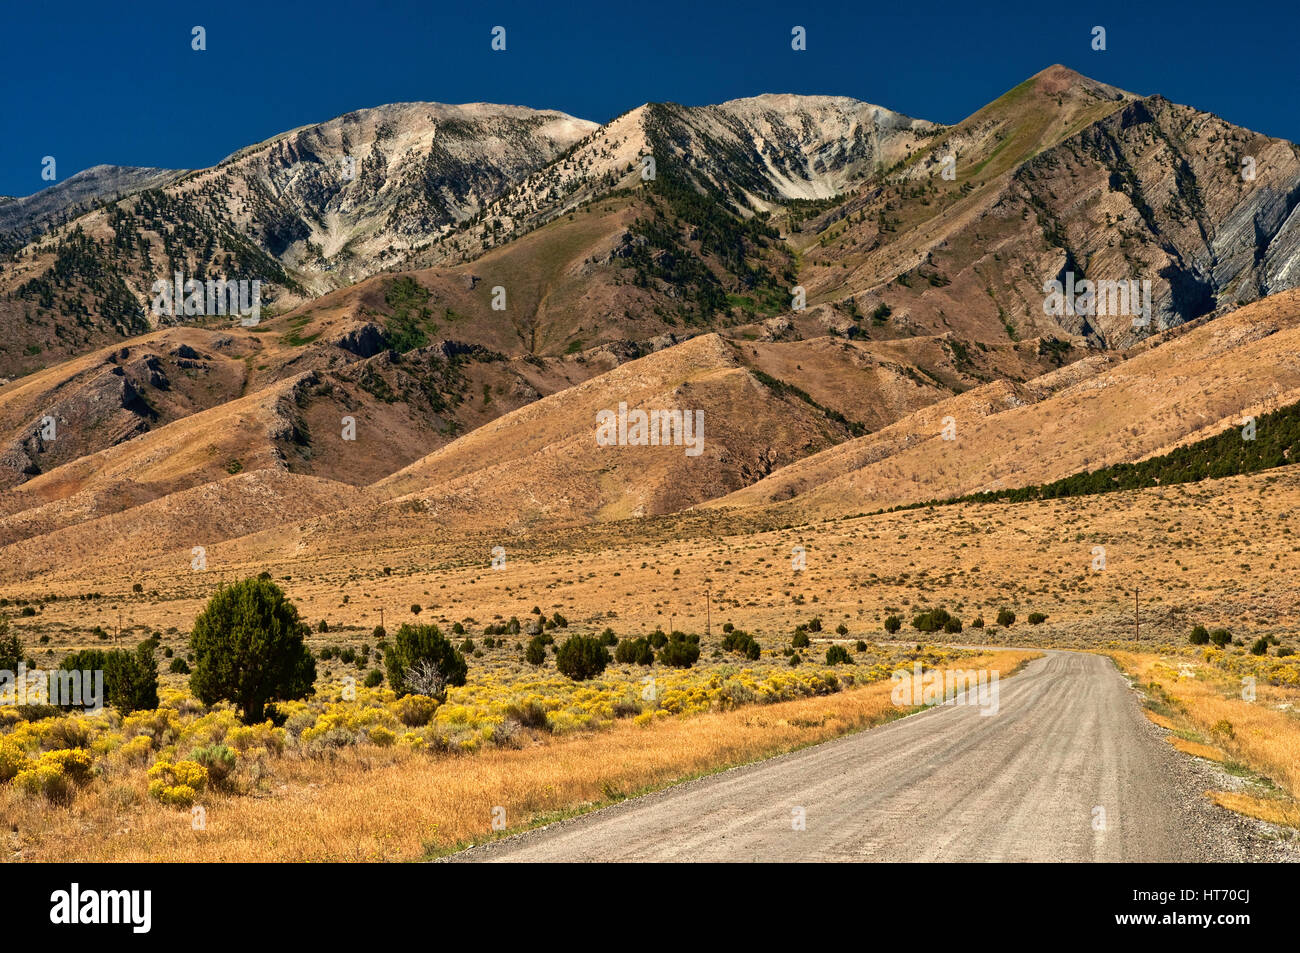 Ruby Mountains from road in Ruby Valley, Great Basin Desert, Nevada, USA - Stock Image